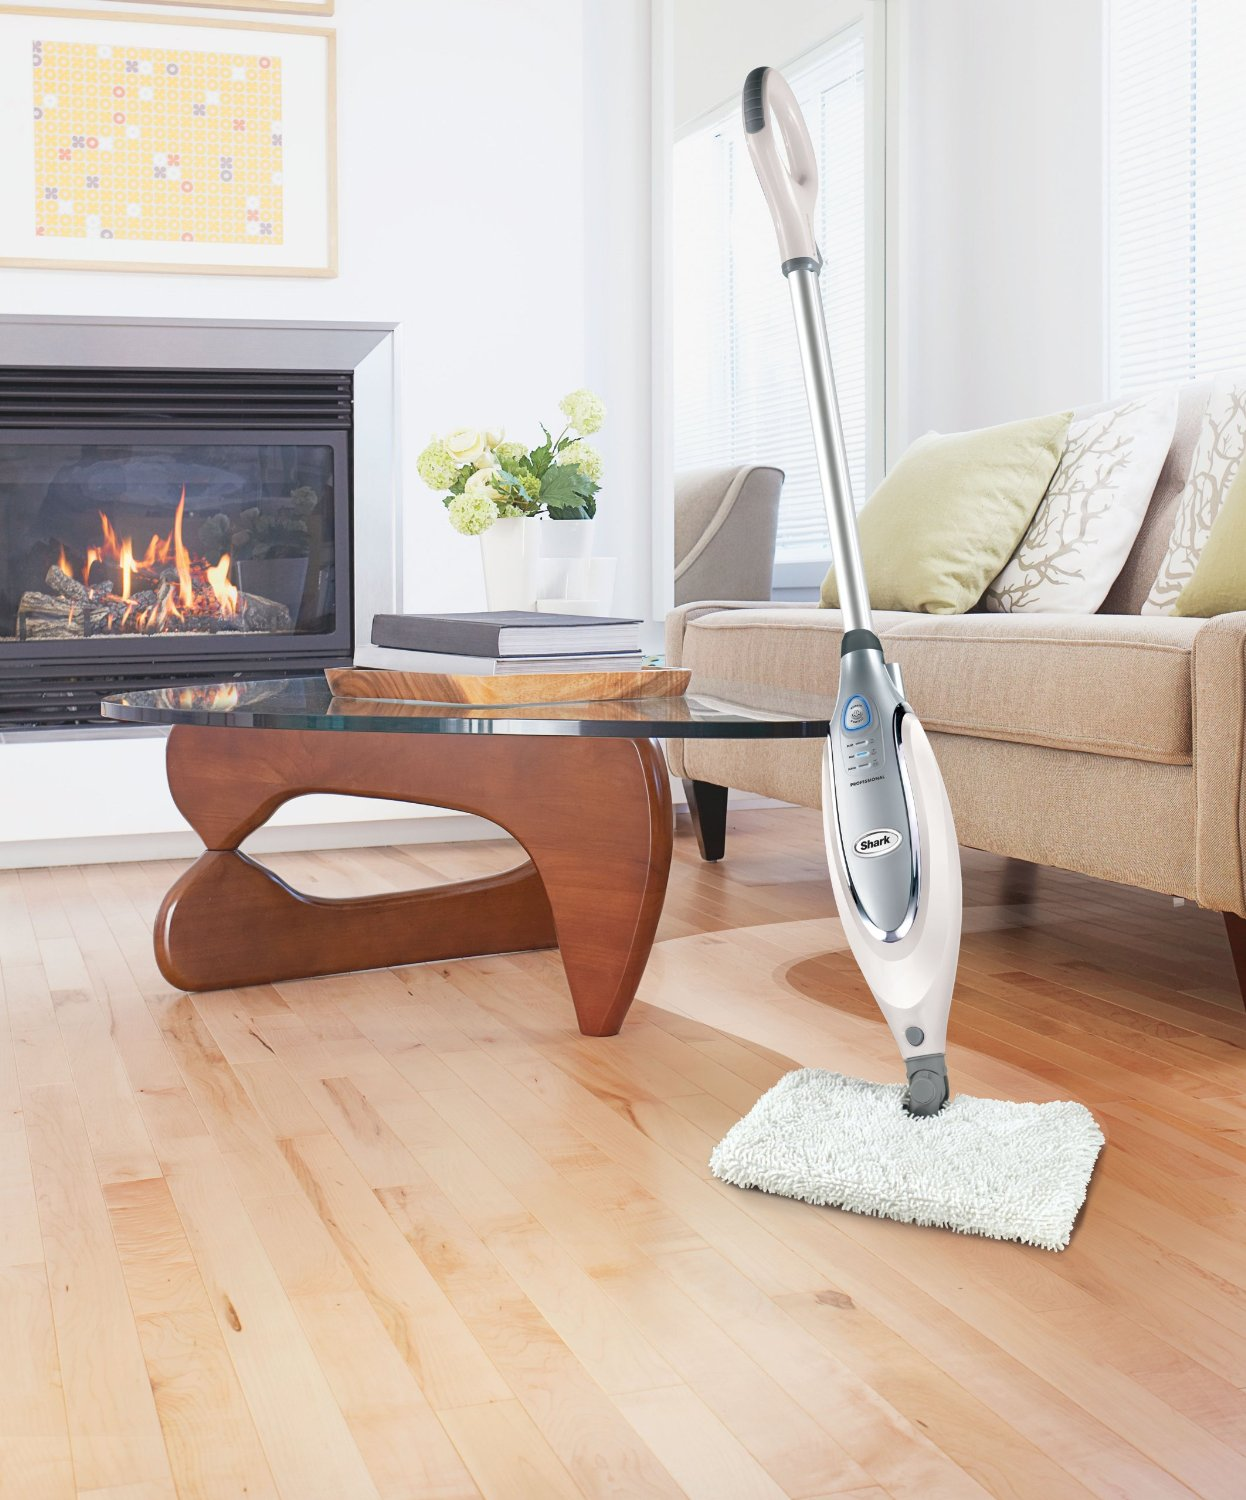 Best floor cleaner for wood floors - Spacious And Elegant Living Room Design With Fireplace And Cream Sofa And Glass Coffee Table With